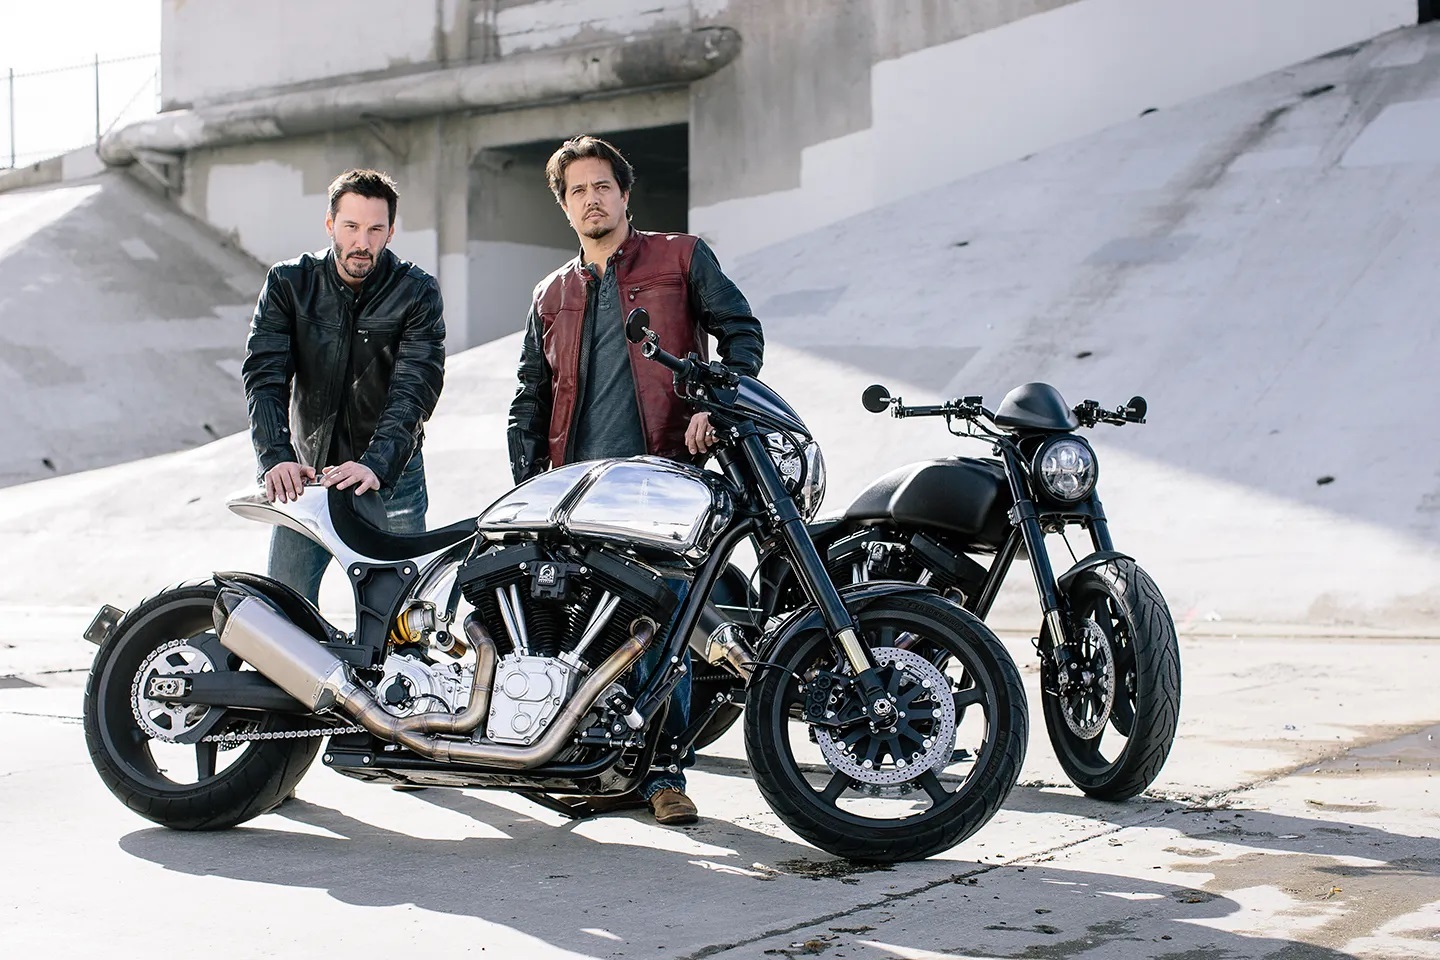 A side view of Keanu Reeves and Gard Hollinger standing next to two ARCH motorcycles via IMPACT: Revitalizing the custom motorcycle scene